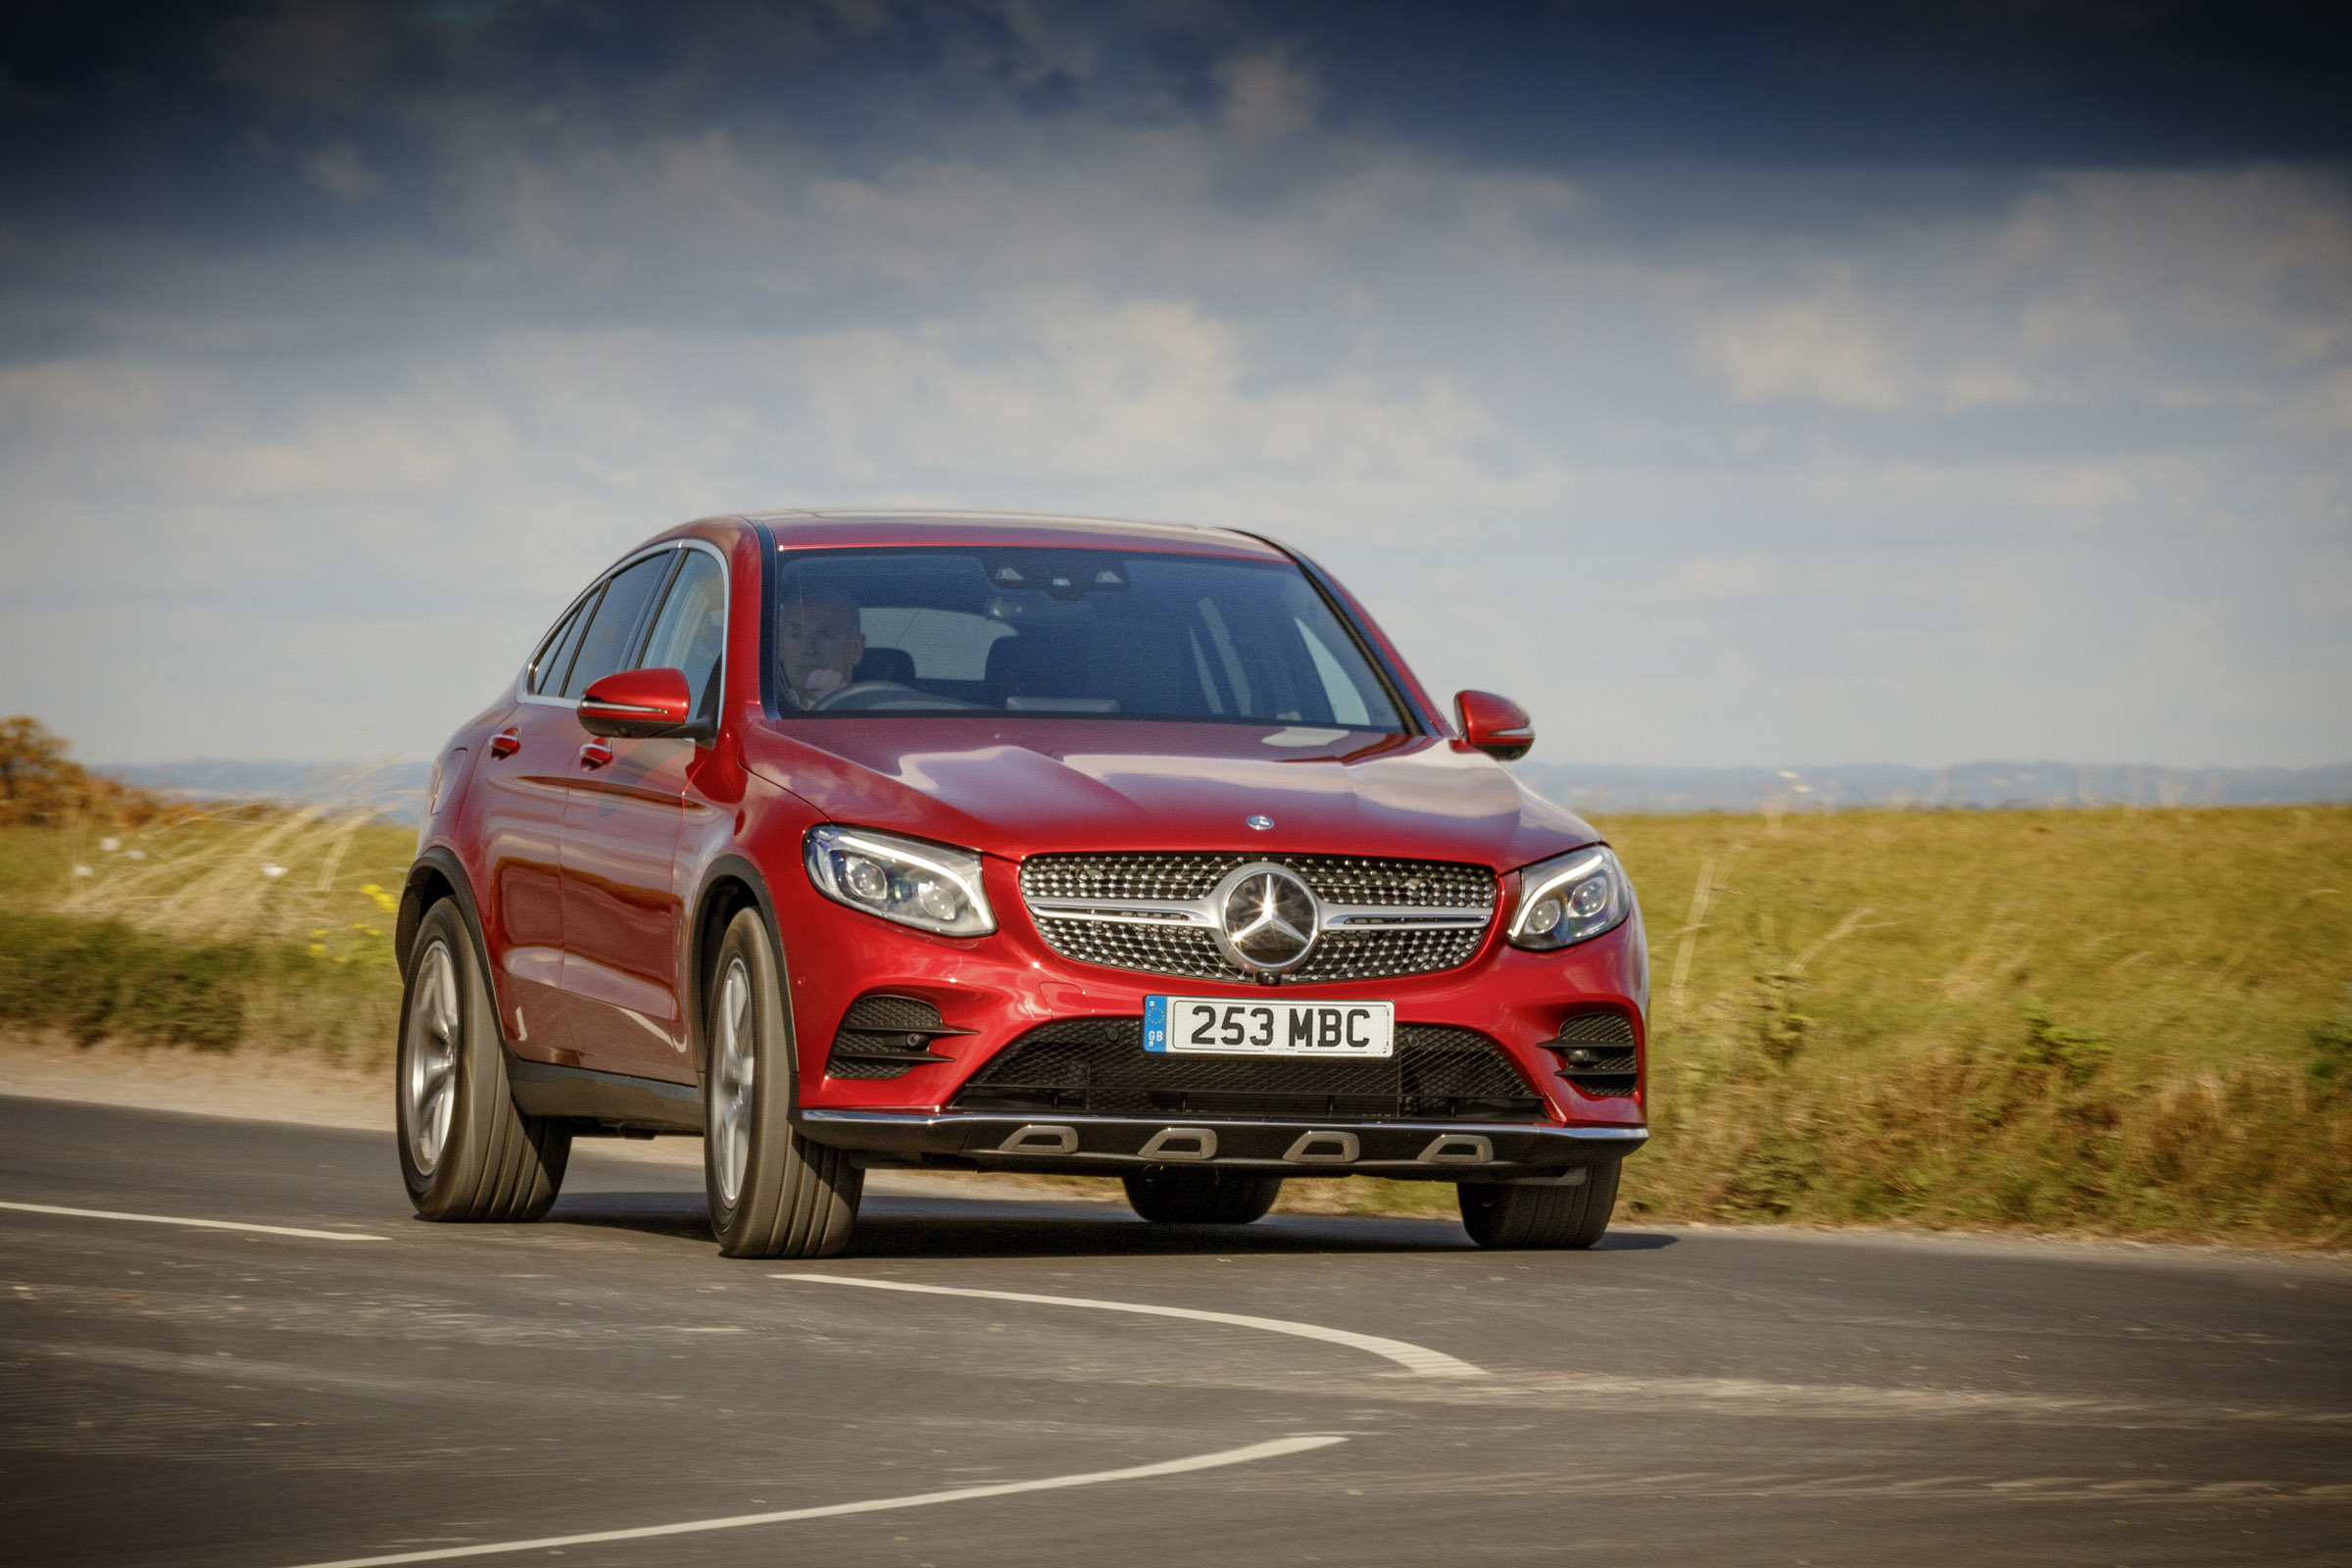 Mercedes-Benz GLC Coupe review - prices, specs and 0-60 time